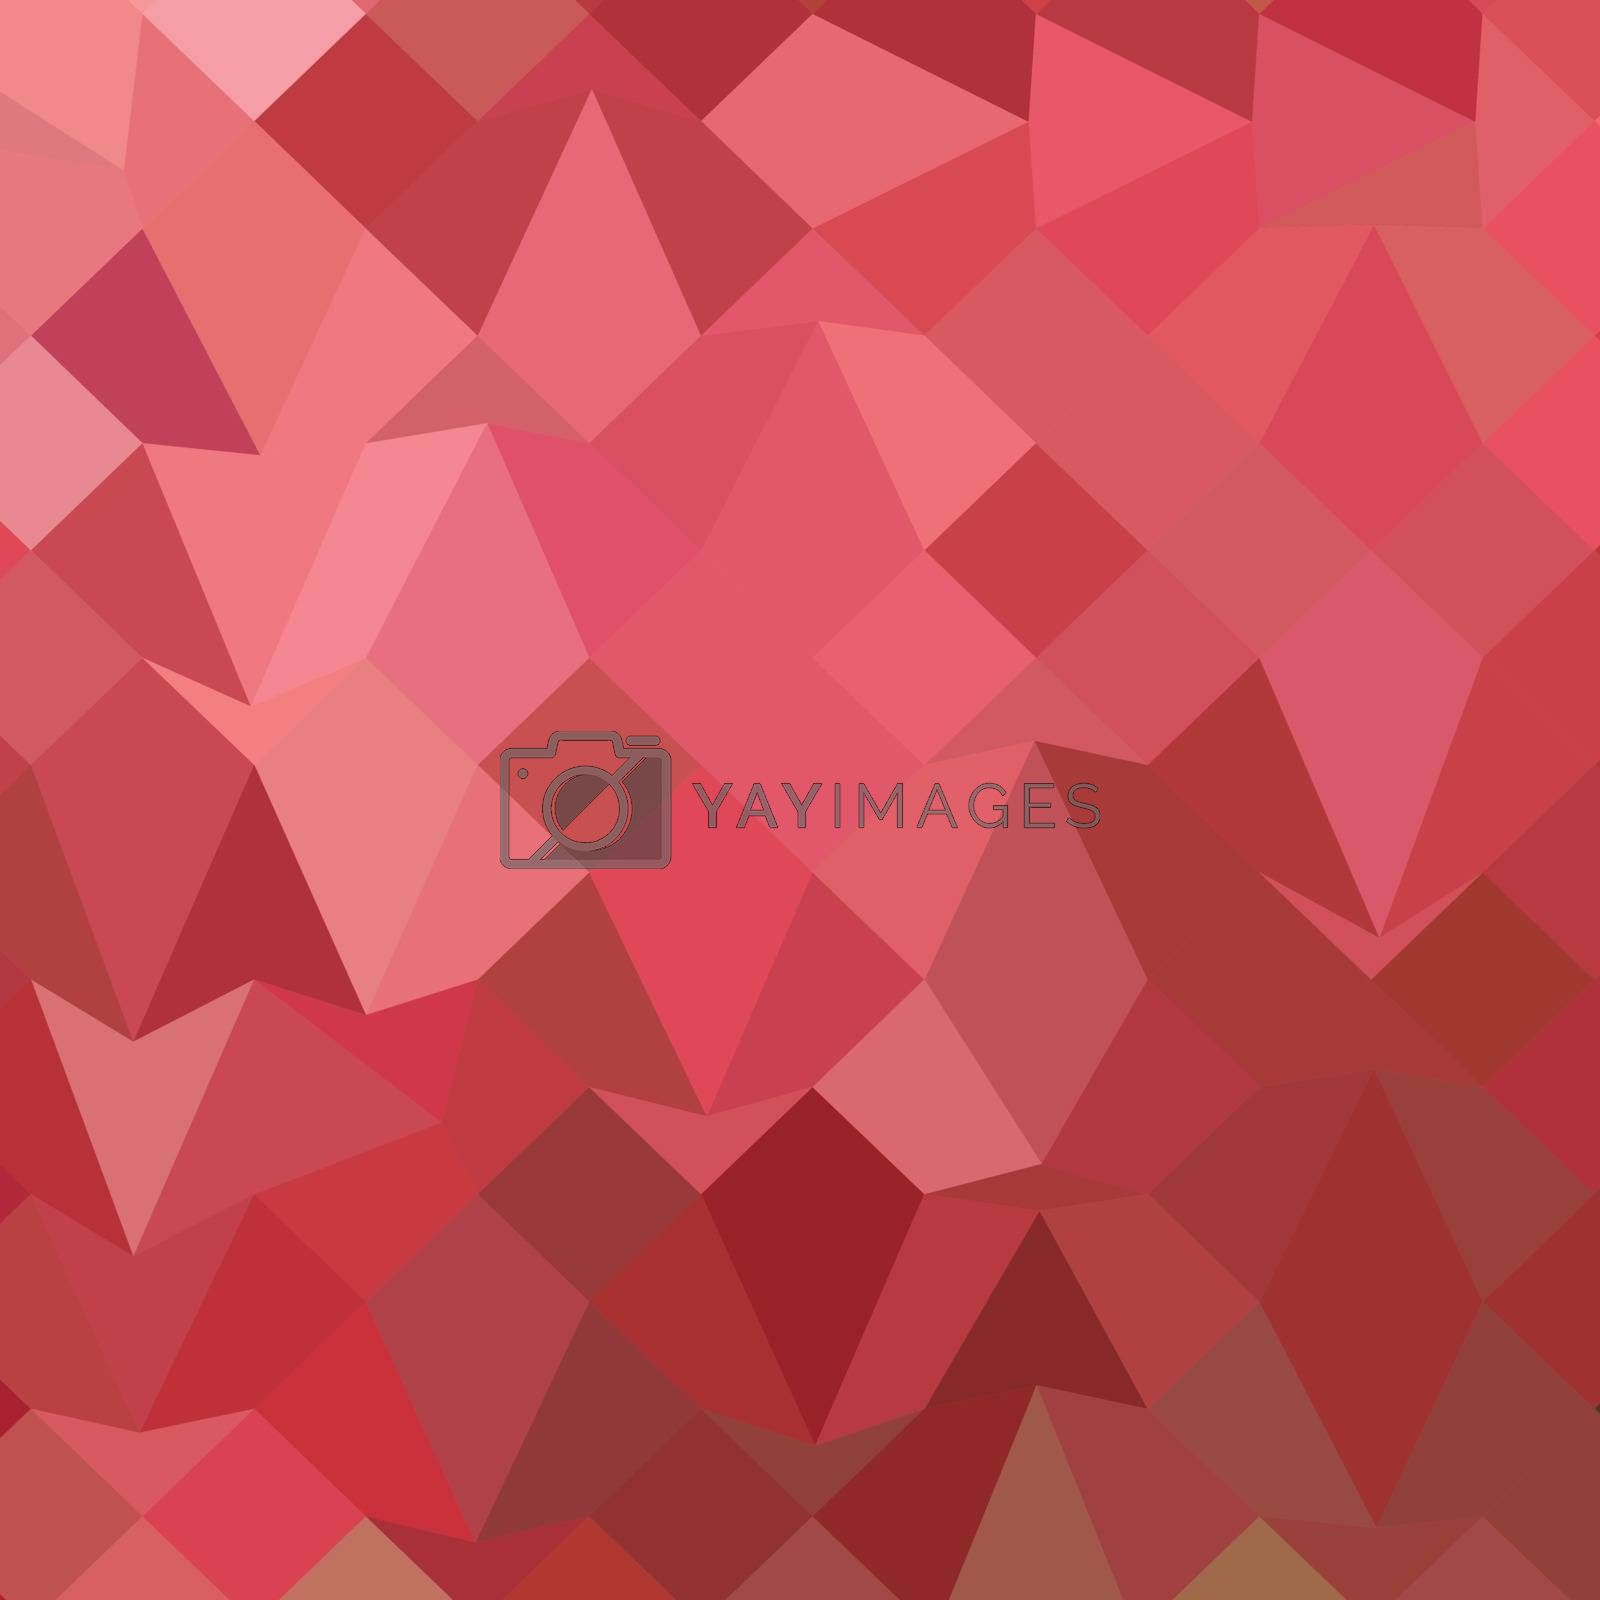 Low polygon style illustration of fandango pink abstract geometric background.